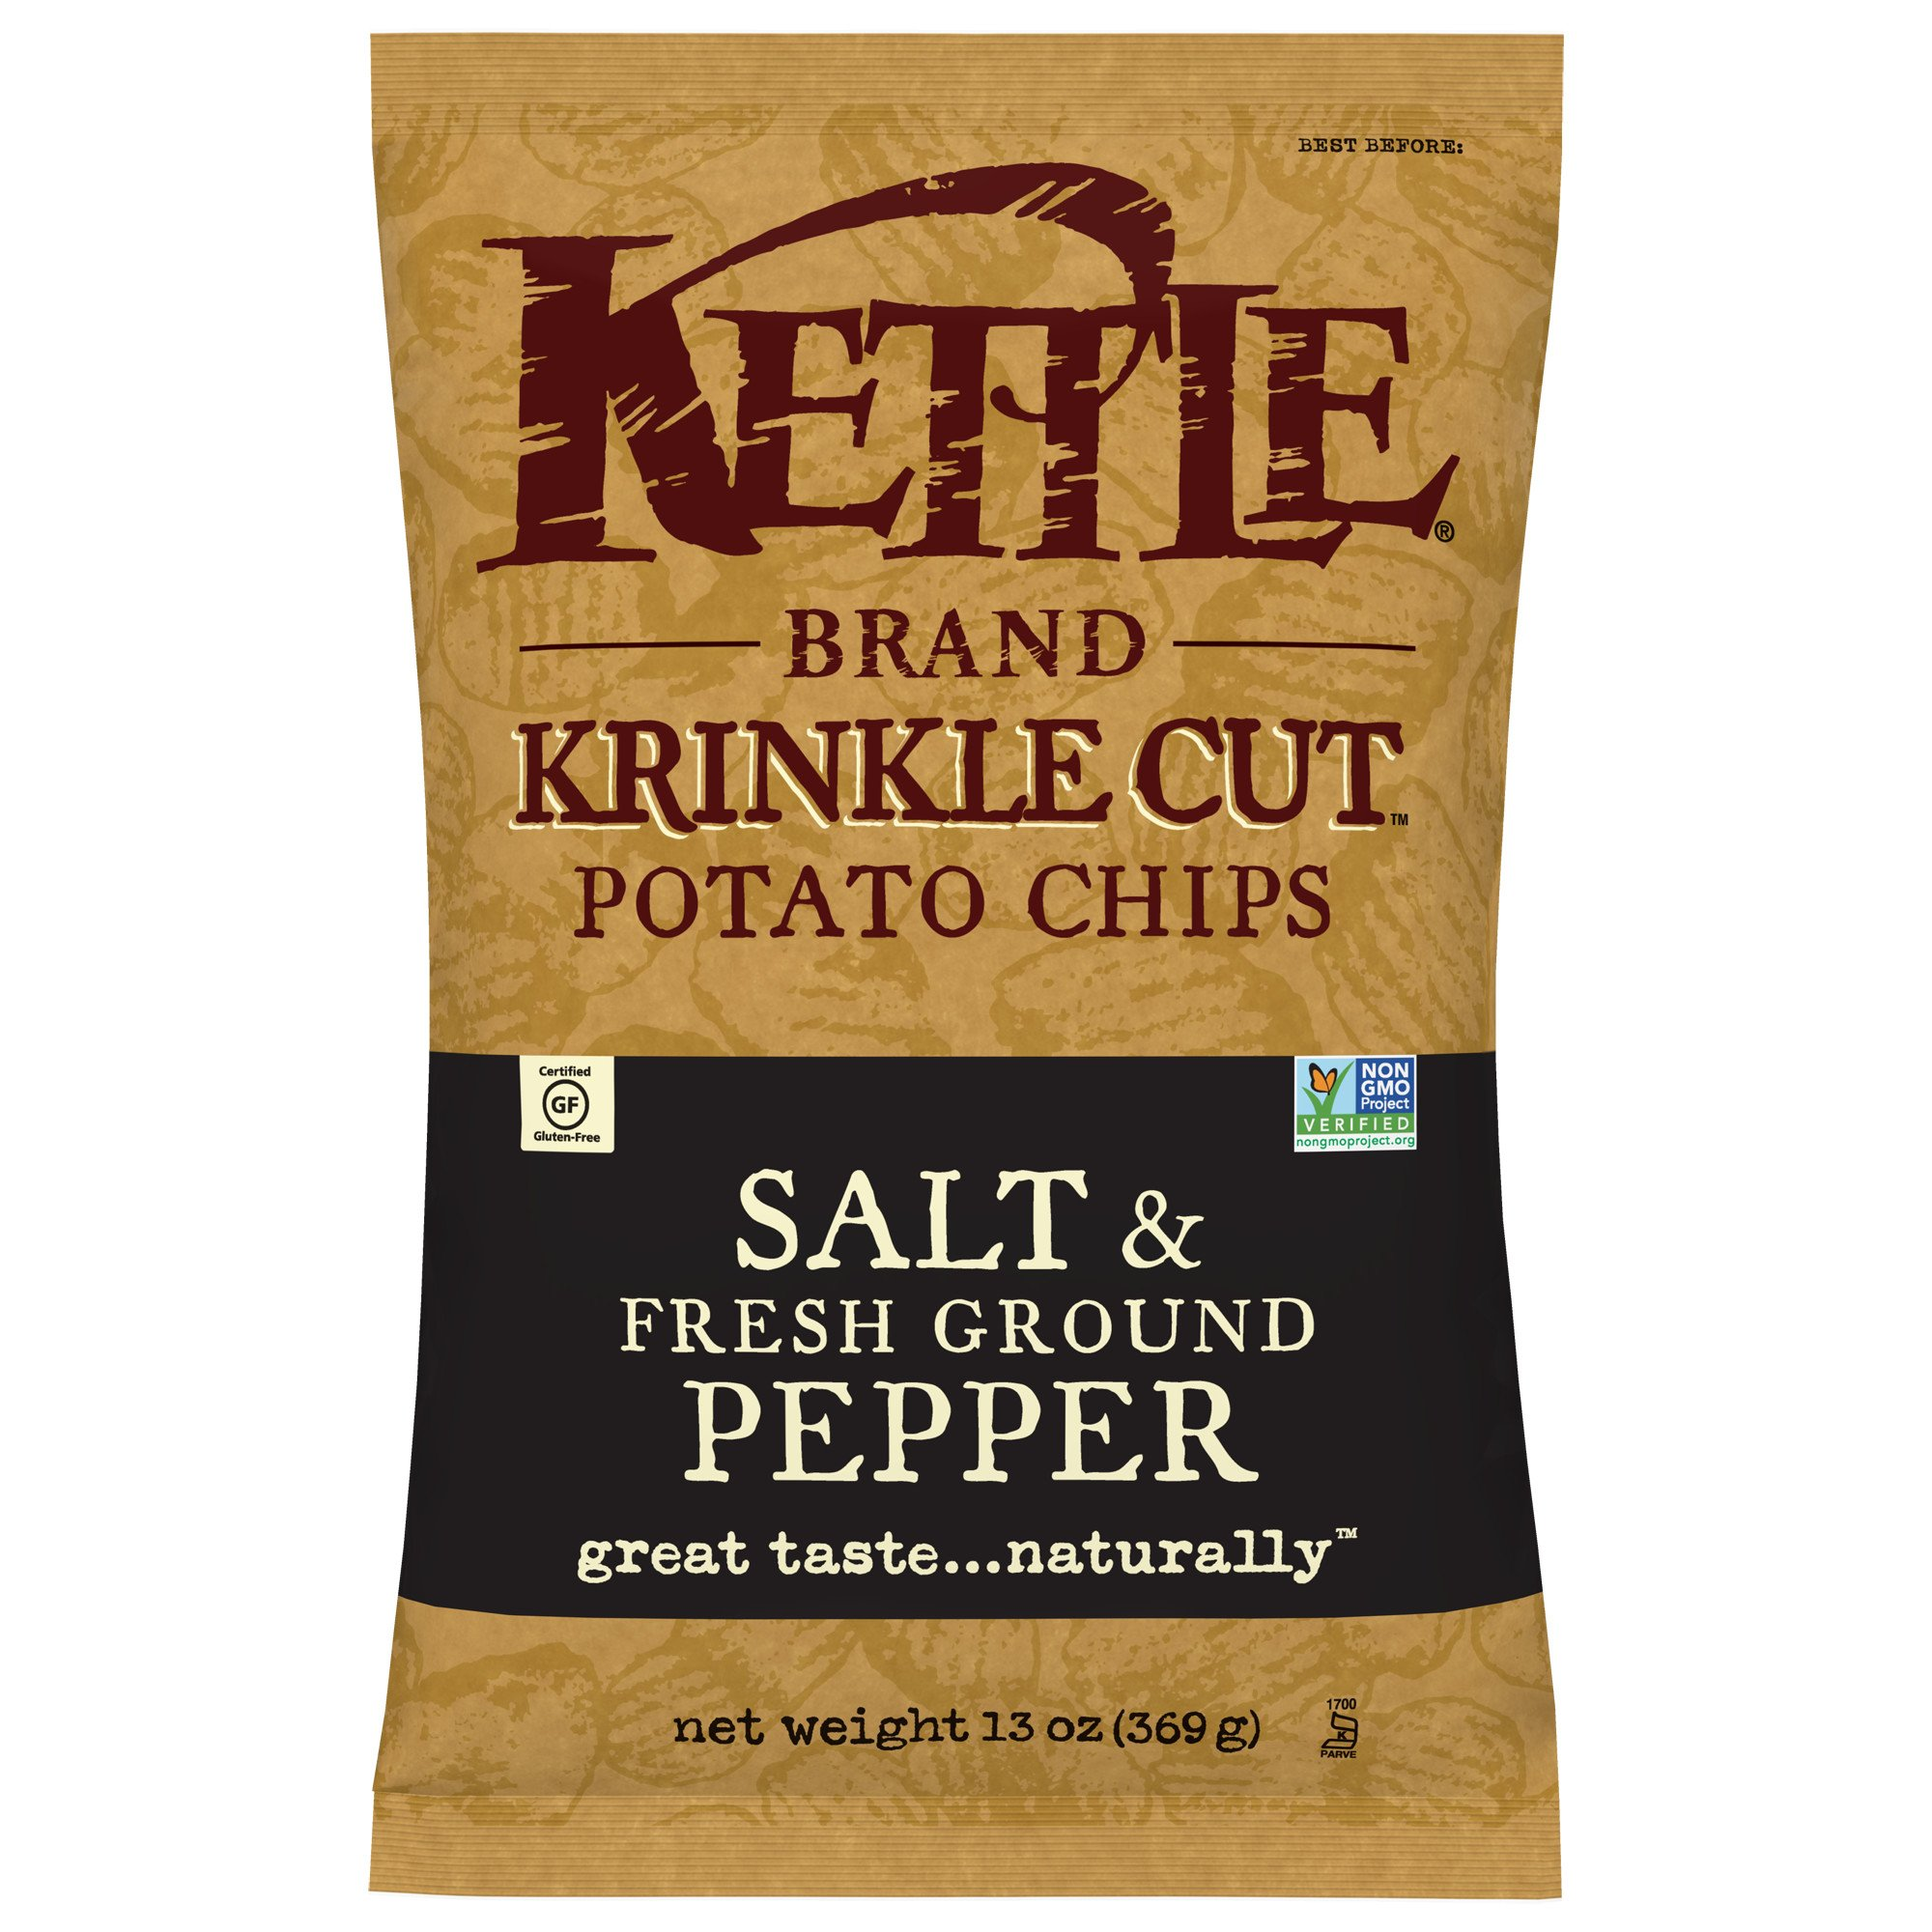 Kettle Brand Potato Chips, Krinkle Cut Salt and Fresh Ground Pepper, 13 Ounce (Pack of 10) by Kettle Brand